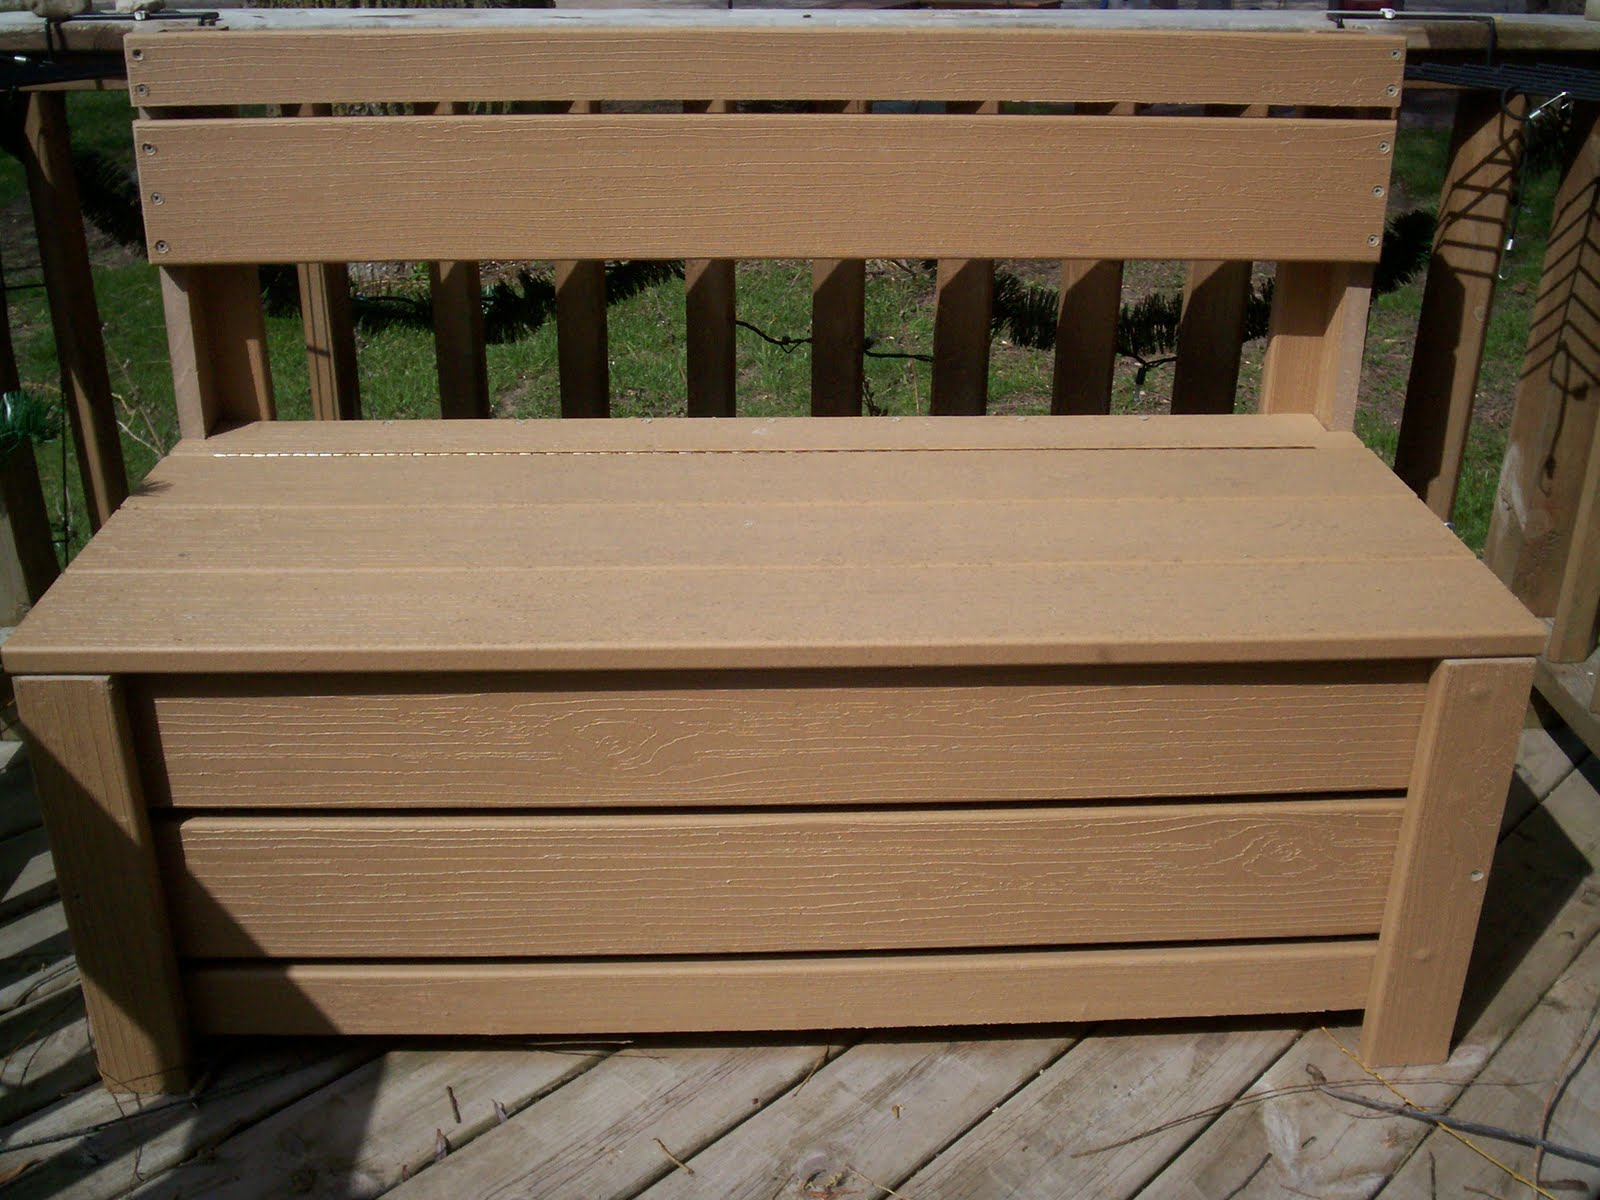 This is the storage bench I made for our deck last spring. I use it to